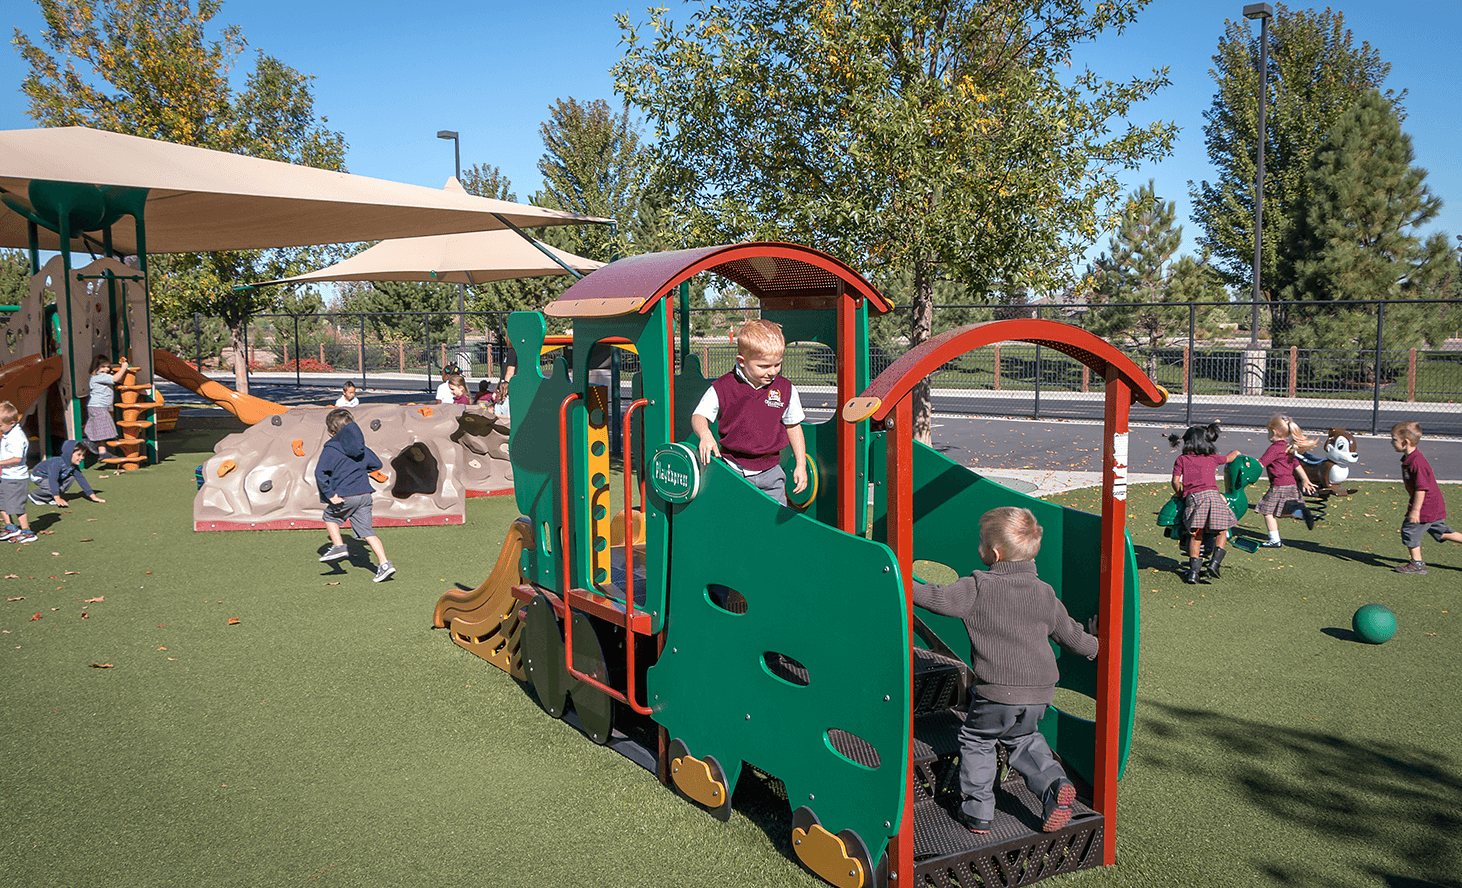 Playground Fun | Challenger School - Everest | Private School In Meridian, Idaho